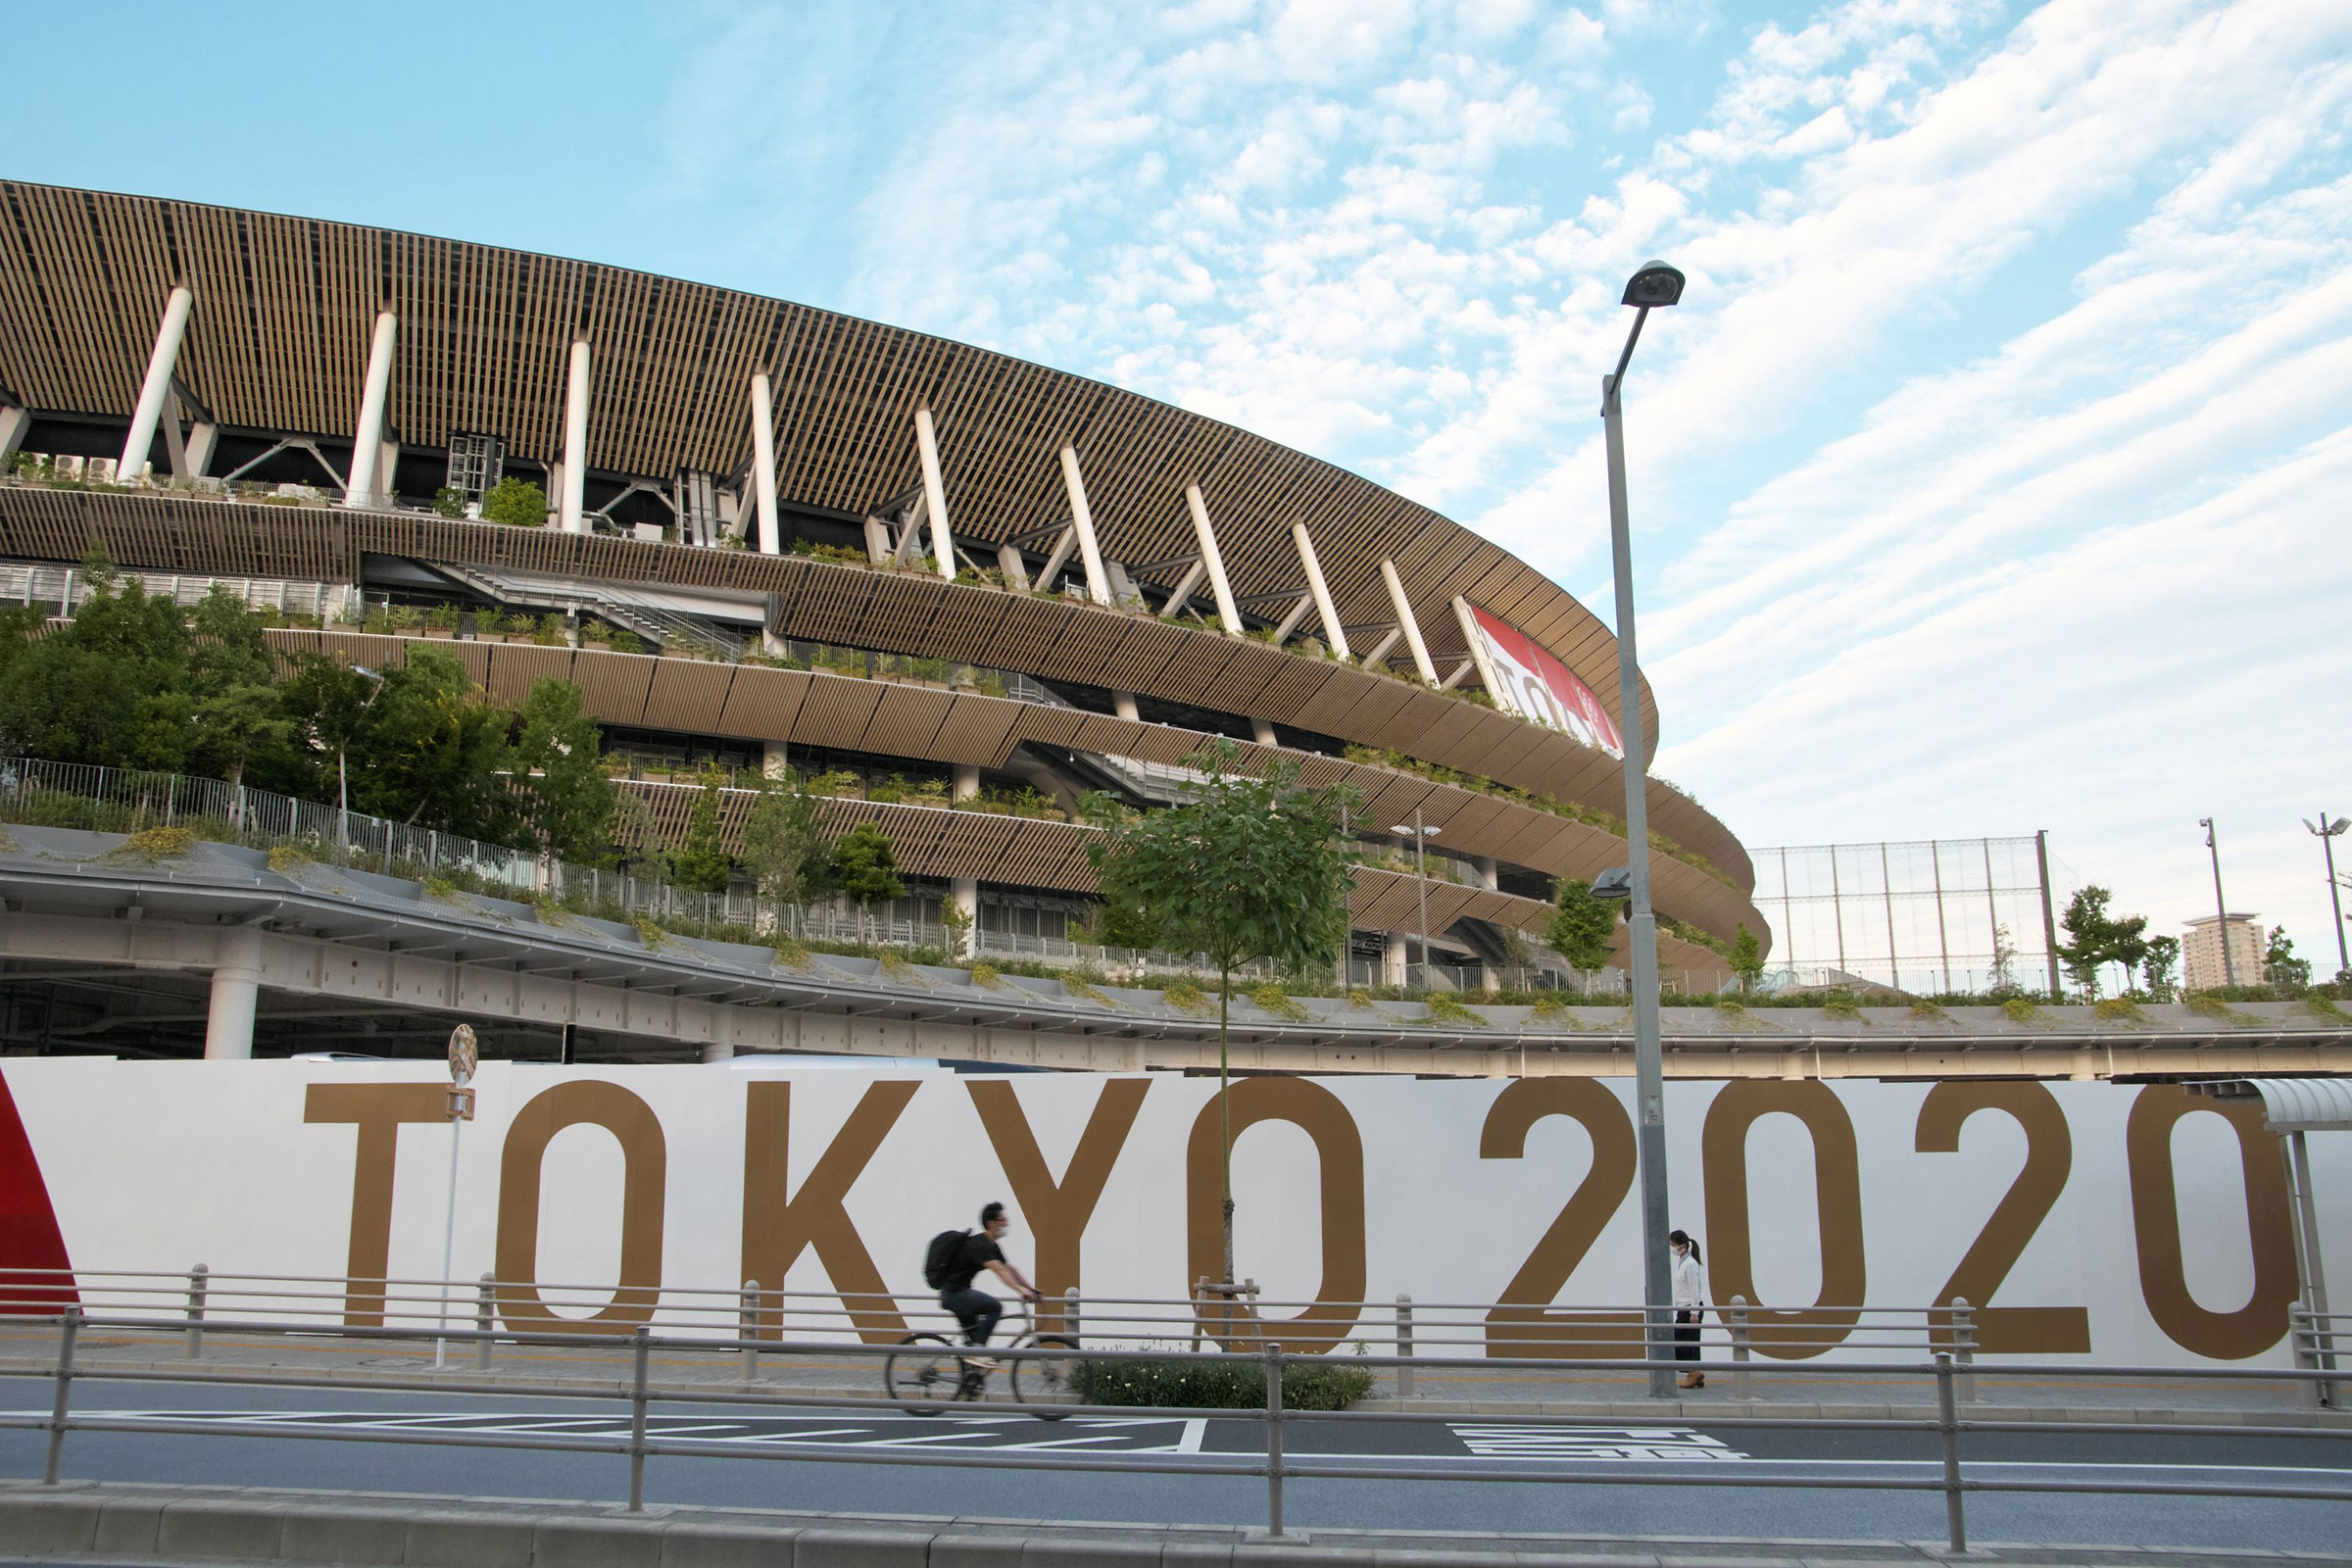 The Tokyo Olympics are set to begin on July 23. There are no publicly out LGBTQ Olympic athletes representing Japan.